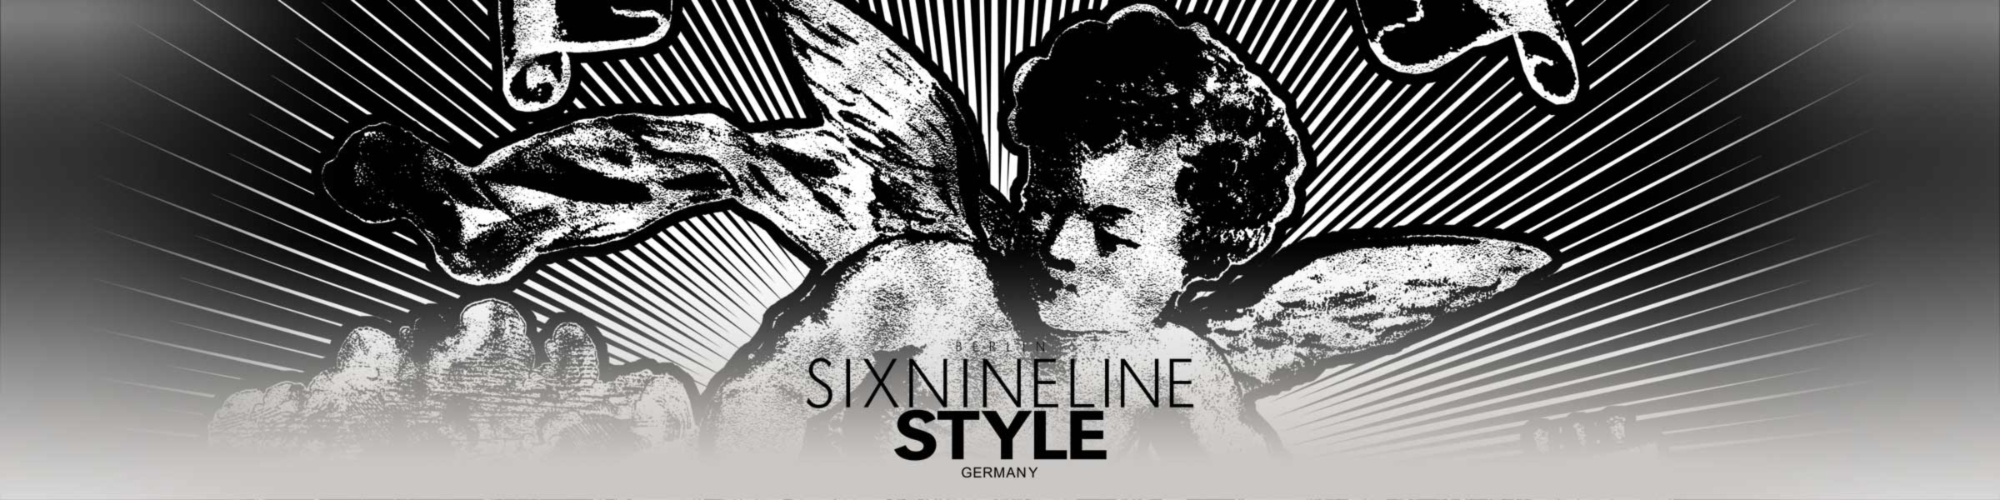 Showroom - sixnineline